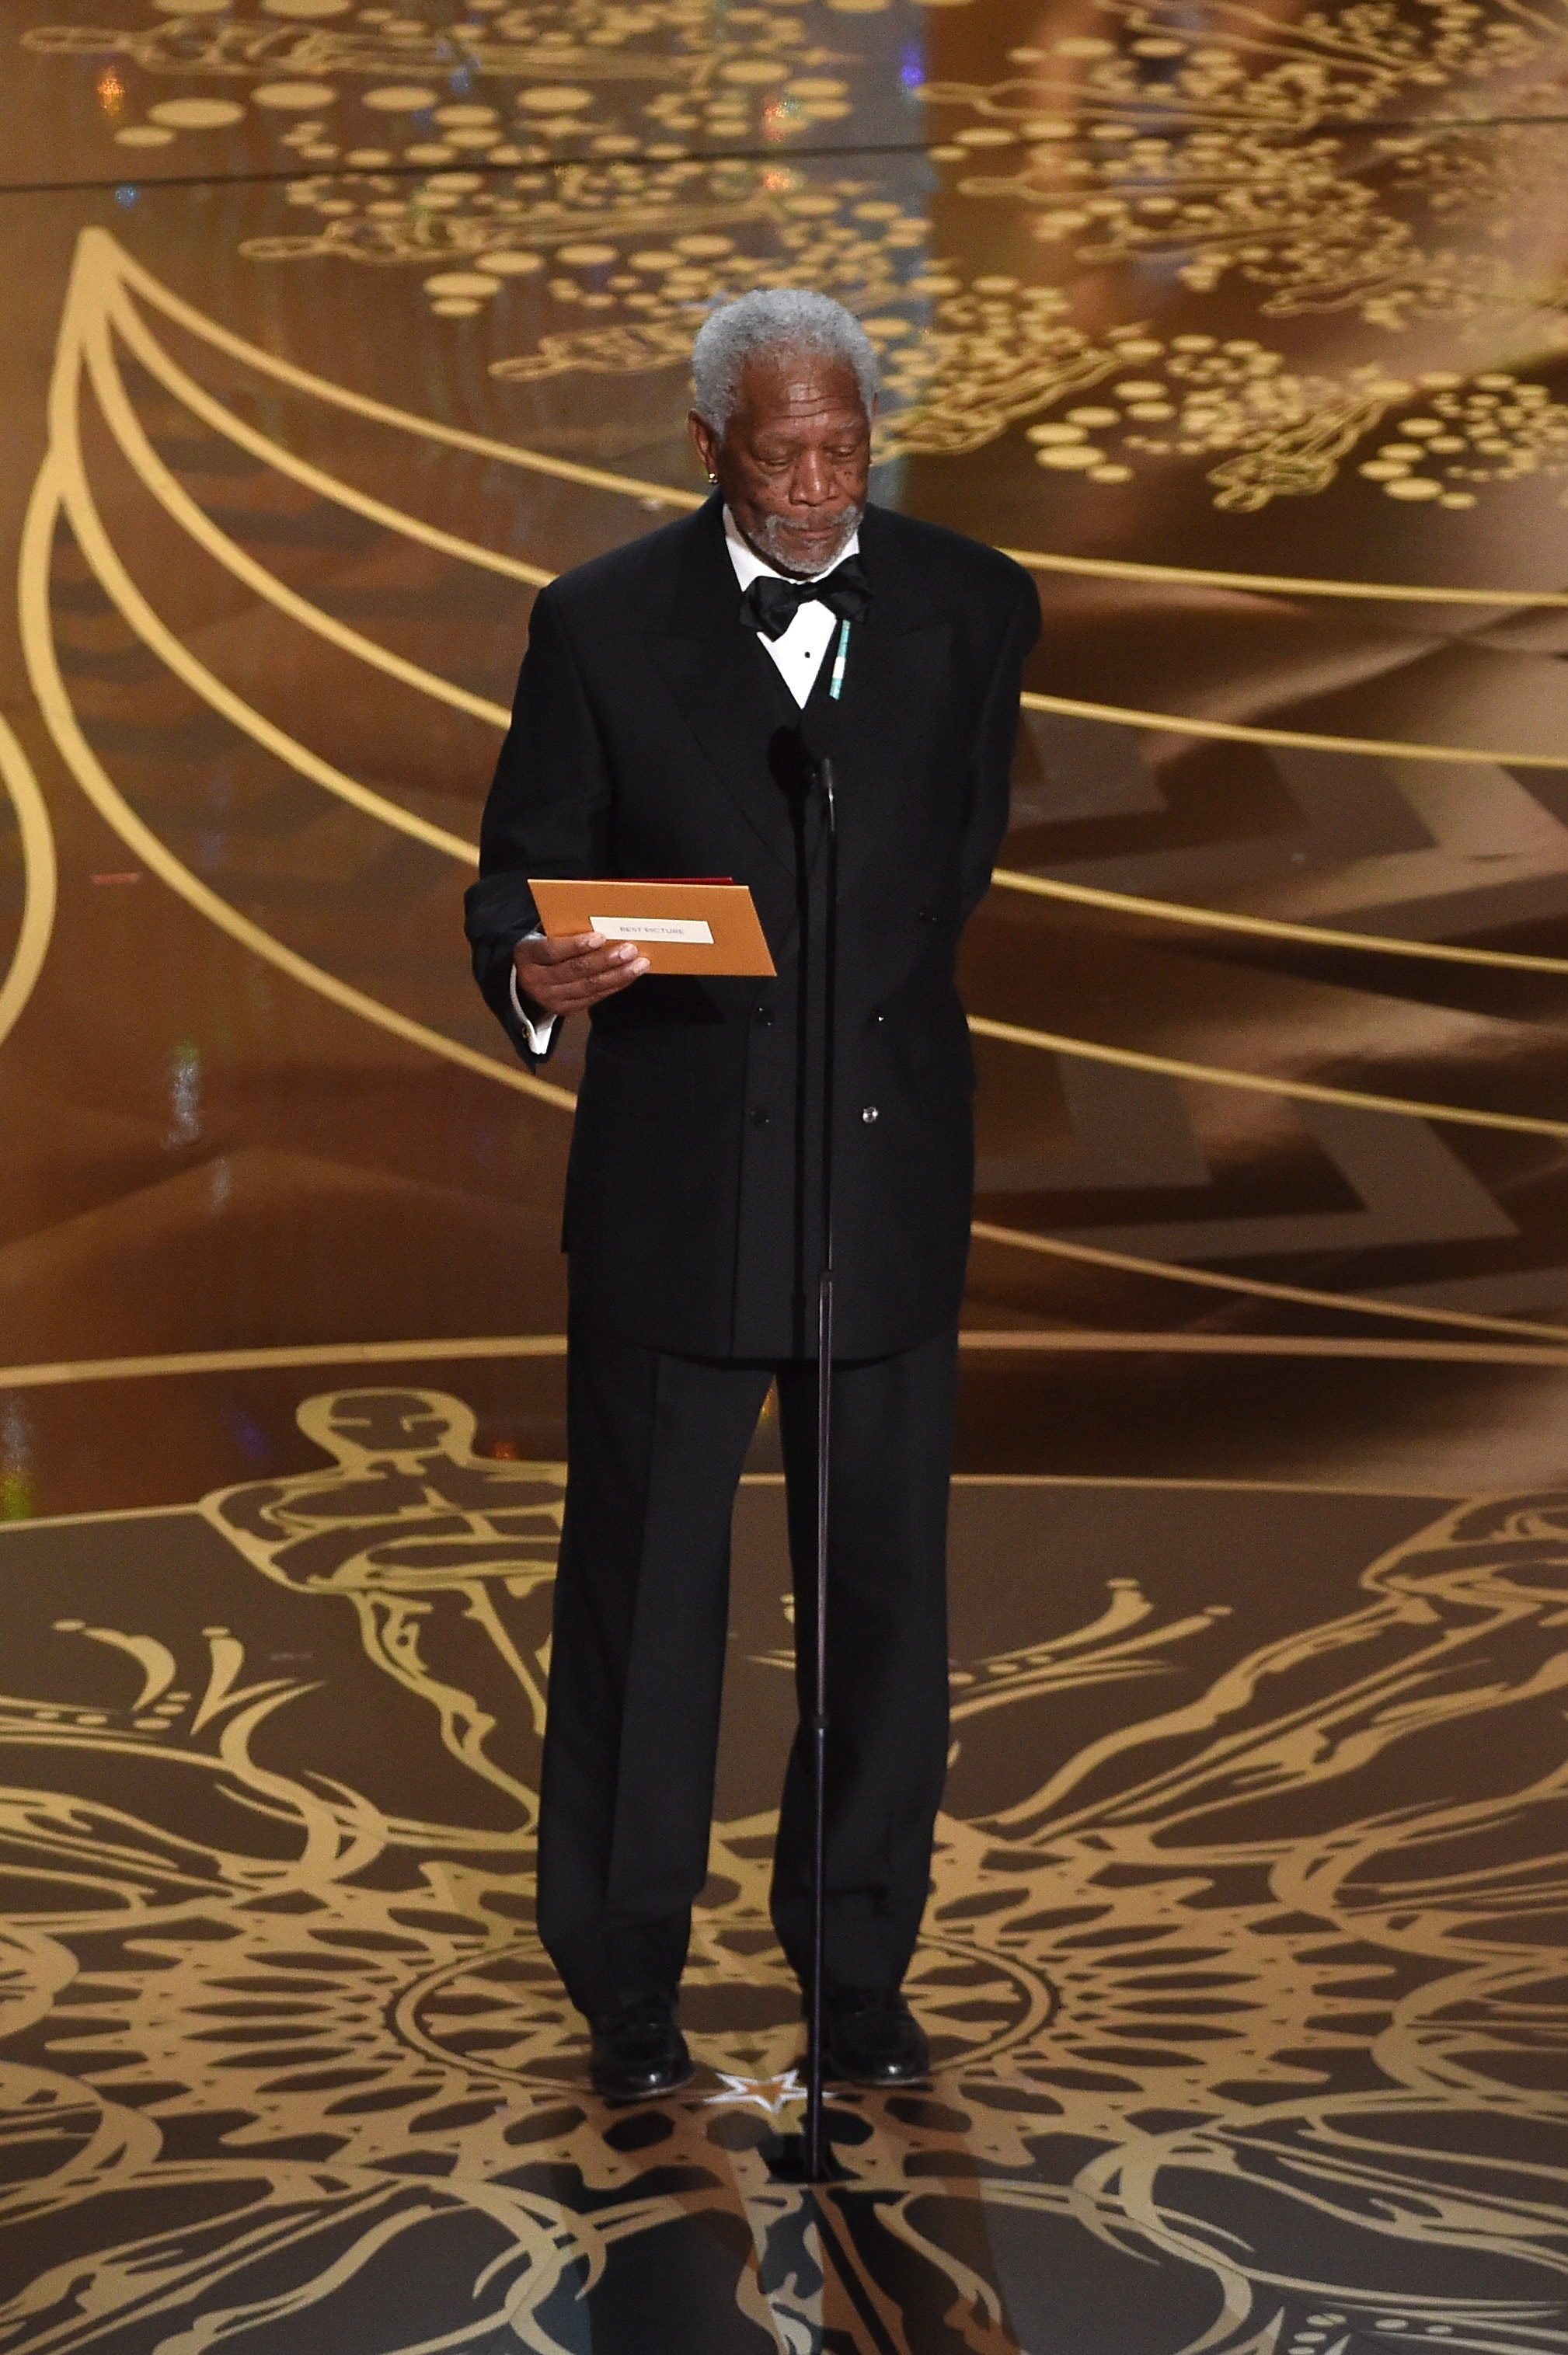 HOLLYWOOD, CA - FEBRUARY 28: Actor Morgan Freeman speaks onstage during the 88th Annual Academy Awards at the Dolby Theatre on February 28, 2016 in Hollywood, California. (Photo by Kevin Winter/Getty Images)